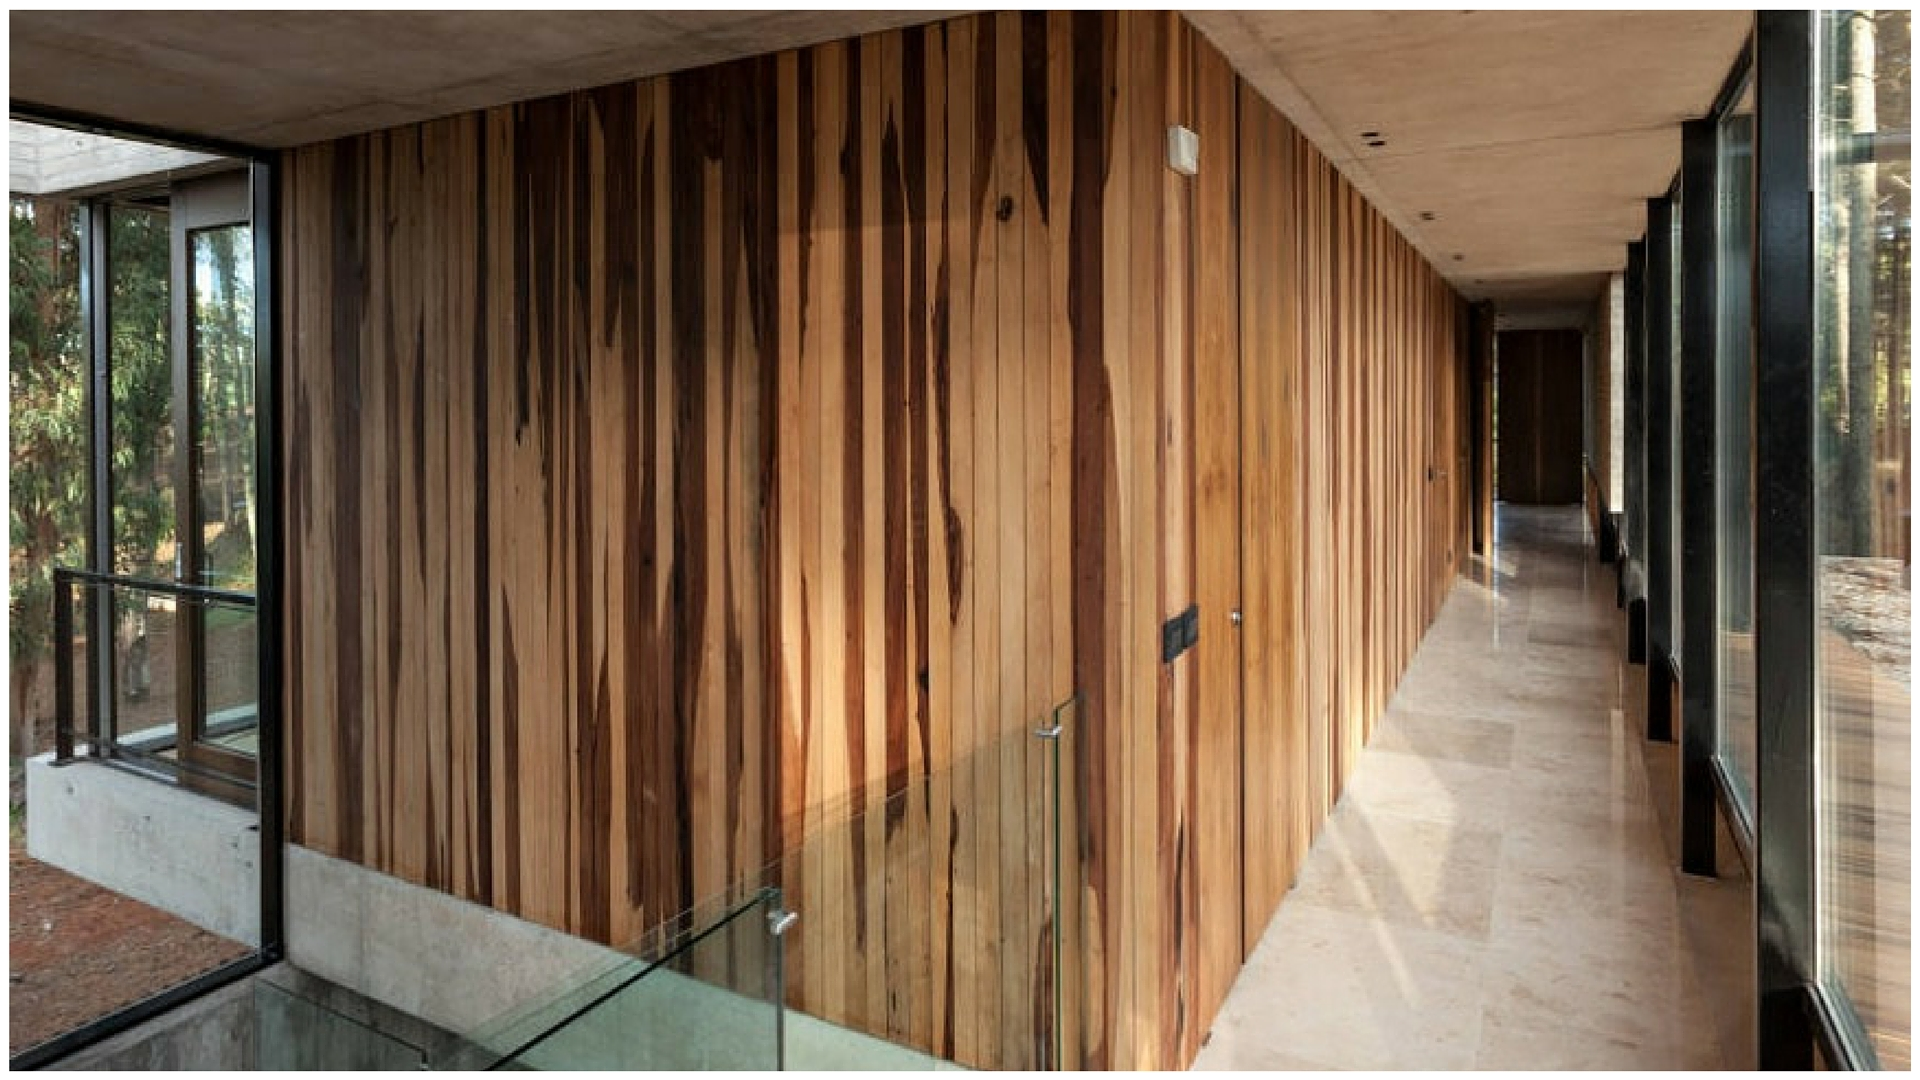 Paredes de madera tendencia axis carpinter a y dise o - Pared de madera interior ...